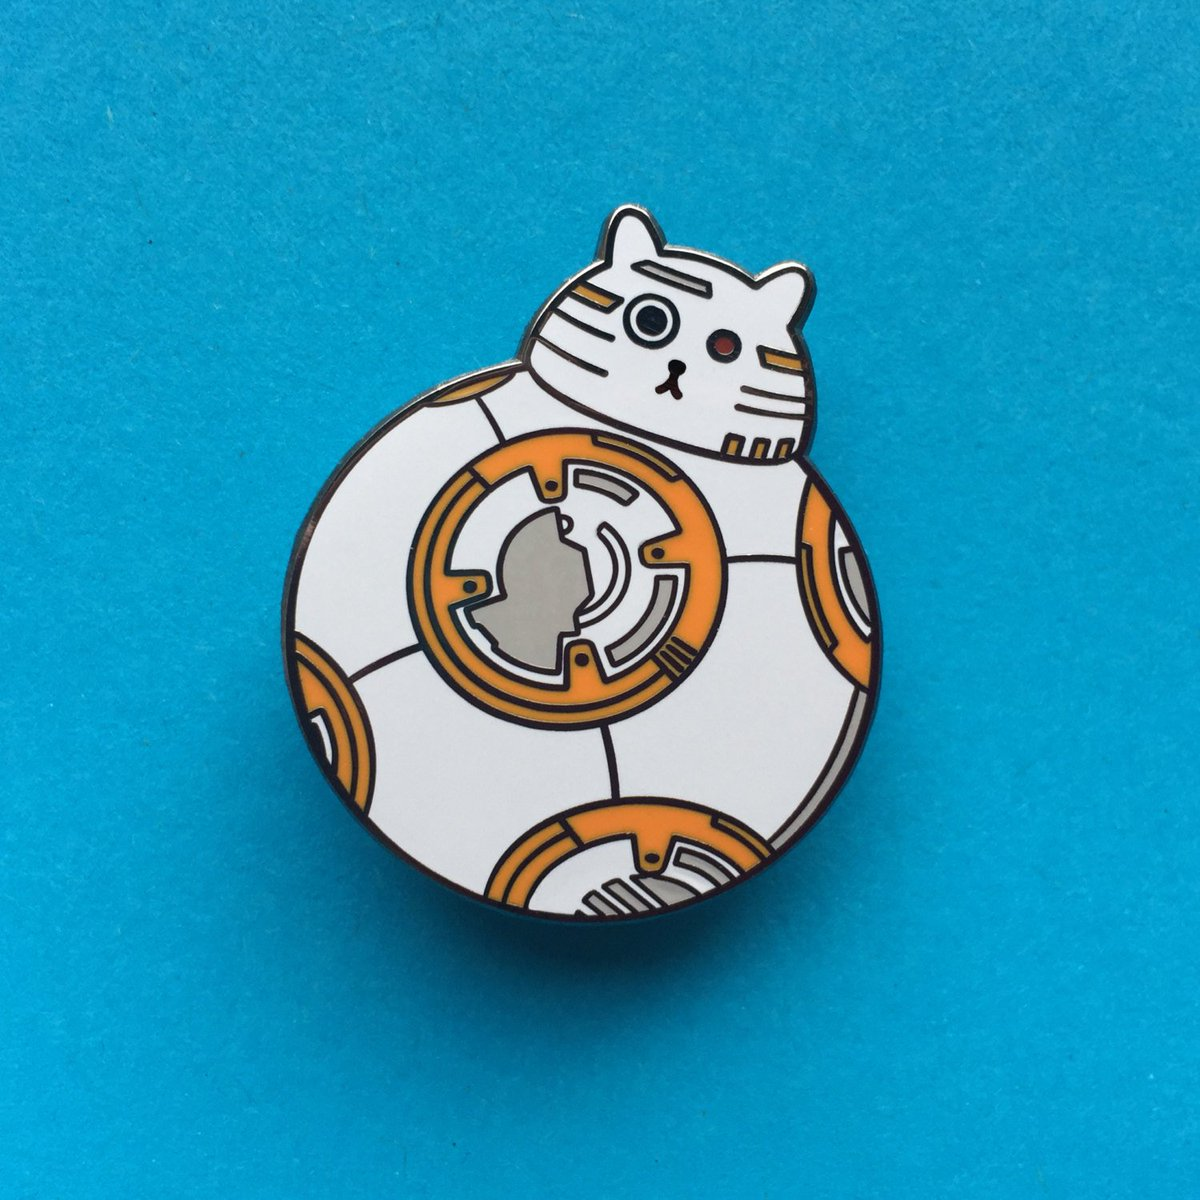 Hi @Craft_Hour #crafthour Fat Kitty is dressing as #BB8 This #halloween #starwars #etsy #cats #pins   ORDER HERE &gt;&gt;&gt;  https://www. etsy.com/uk/listing/398 689593/bb8-pin-star-wars-enamel-badge-lapel-pin?ref=shop_home_feat_2 &nbsp; … <br>http://pic.twitter.com/t3JMsn63KT